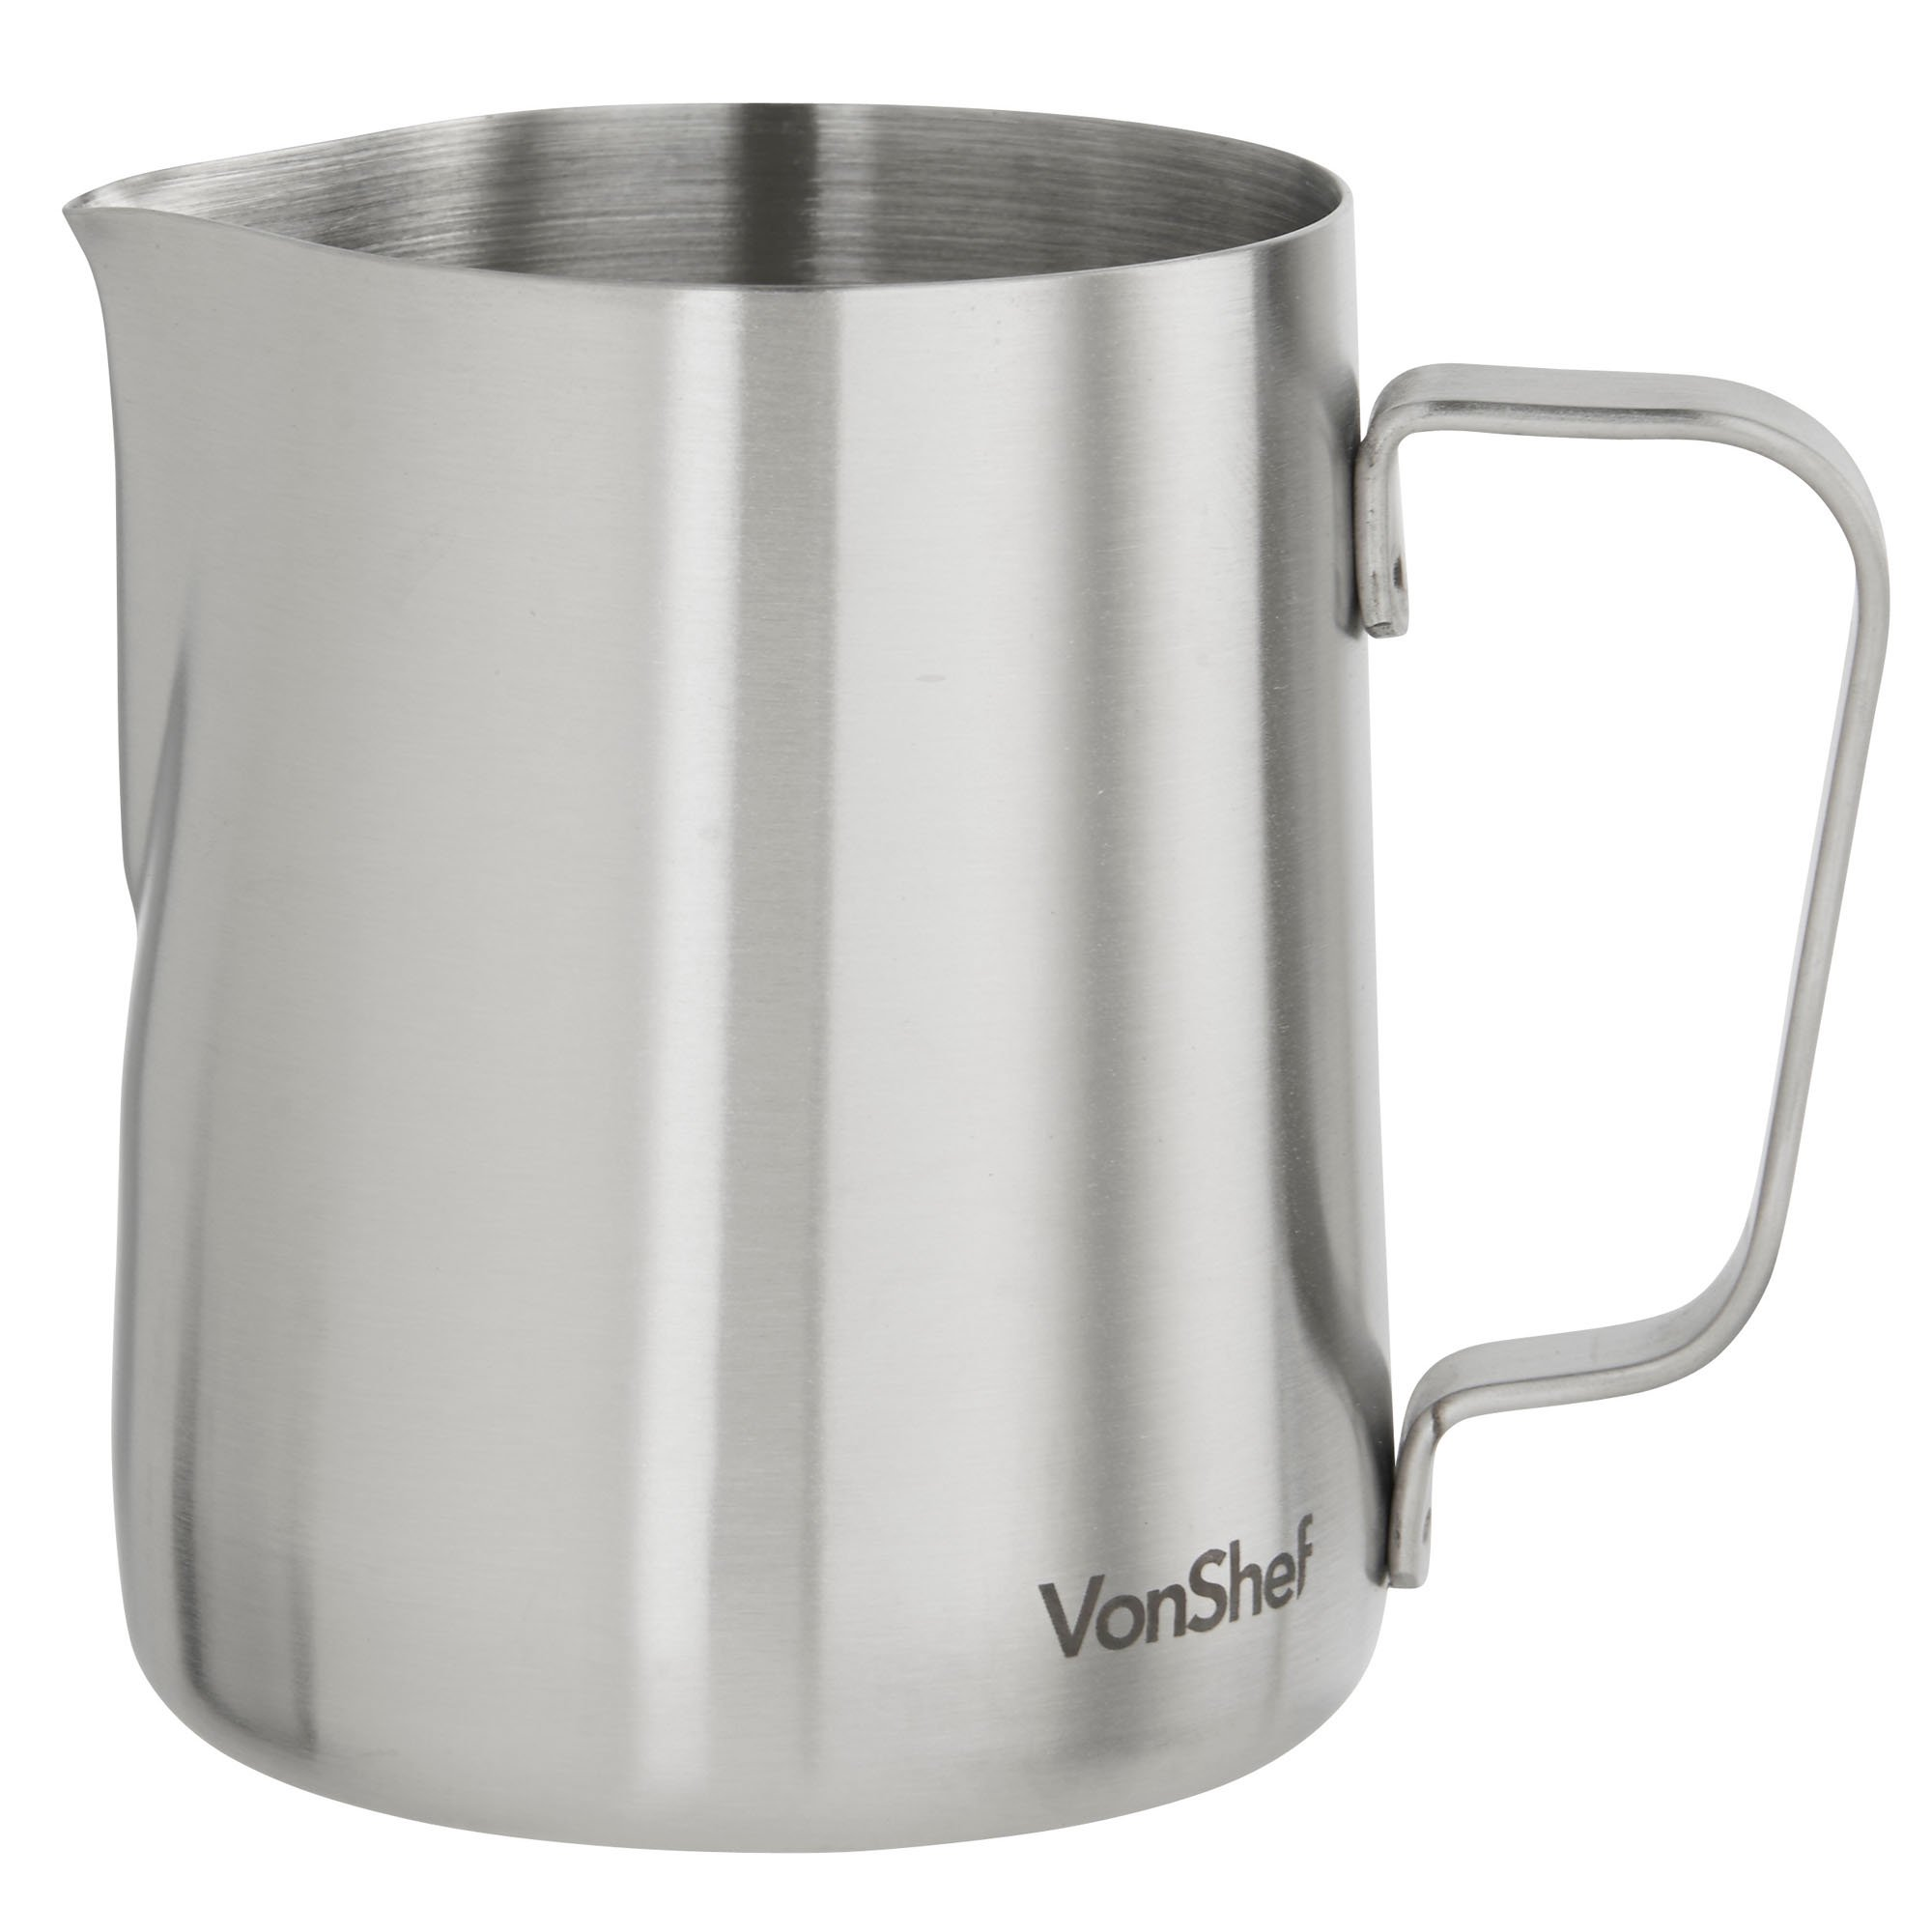 VonShef Stainless Steel Milk Pitcher Suitable for Coffee, Latte & Frothing Milk, Available in 12-Oz, 20-Oz and 32-Oz sizes by VonShef